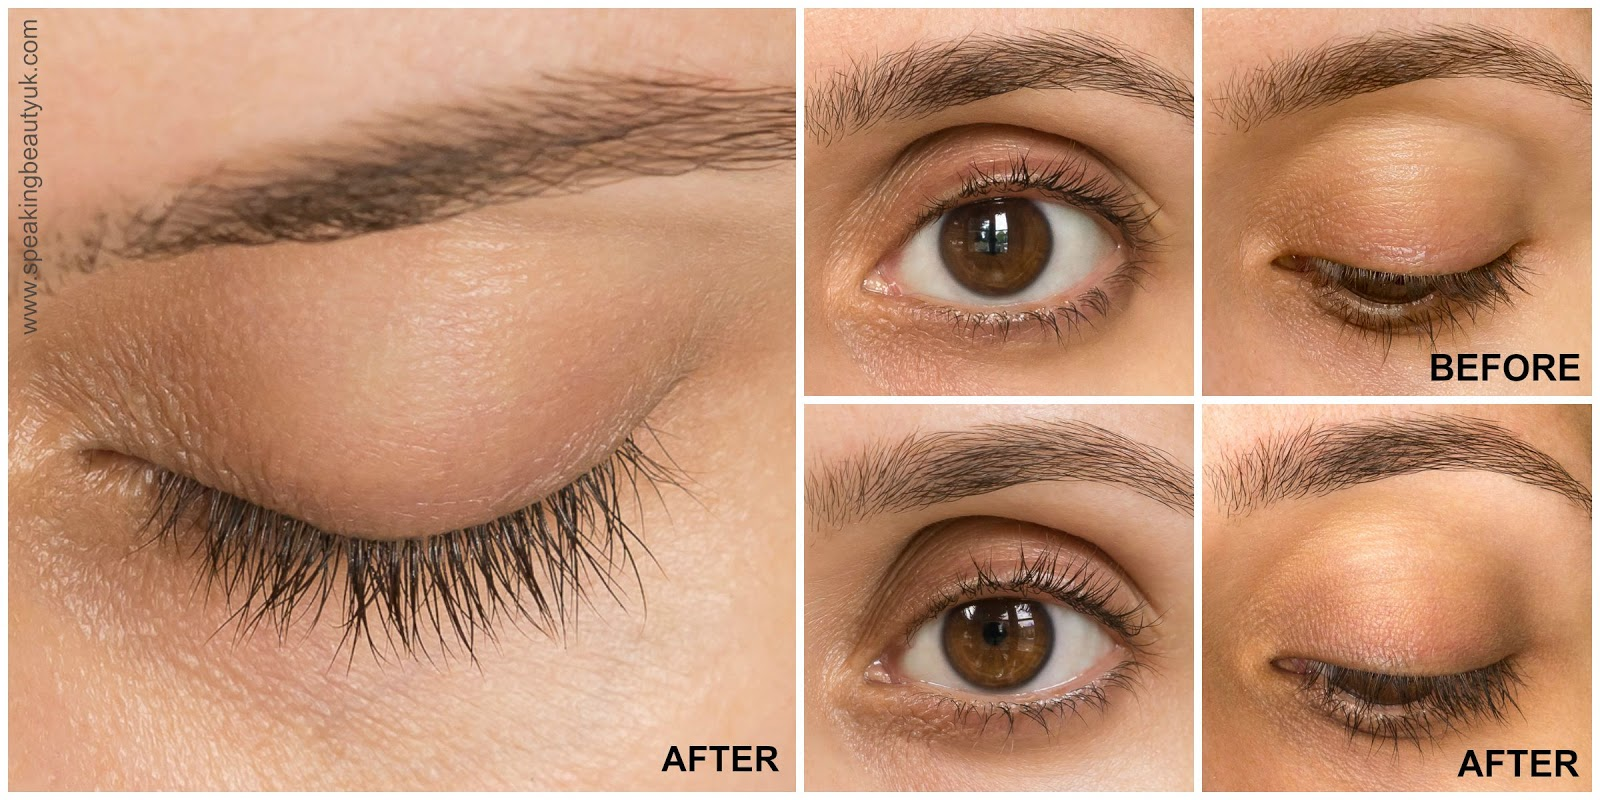 Realash Eyelash Enhancer - 1 Month Update - before & after